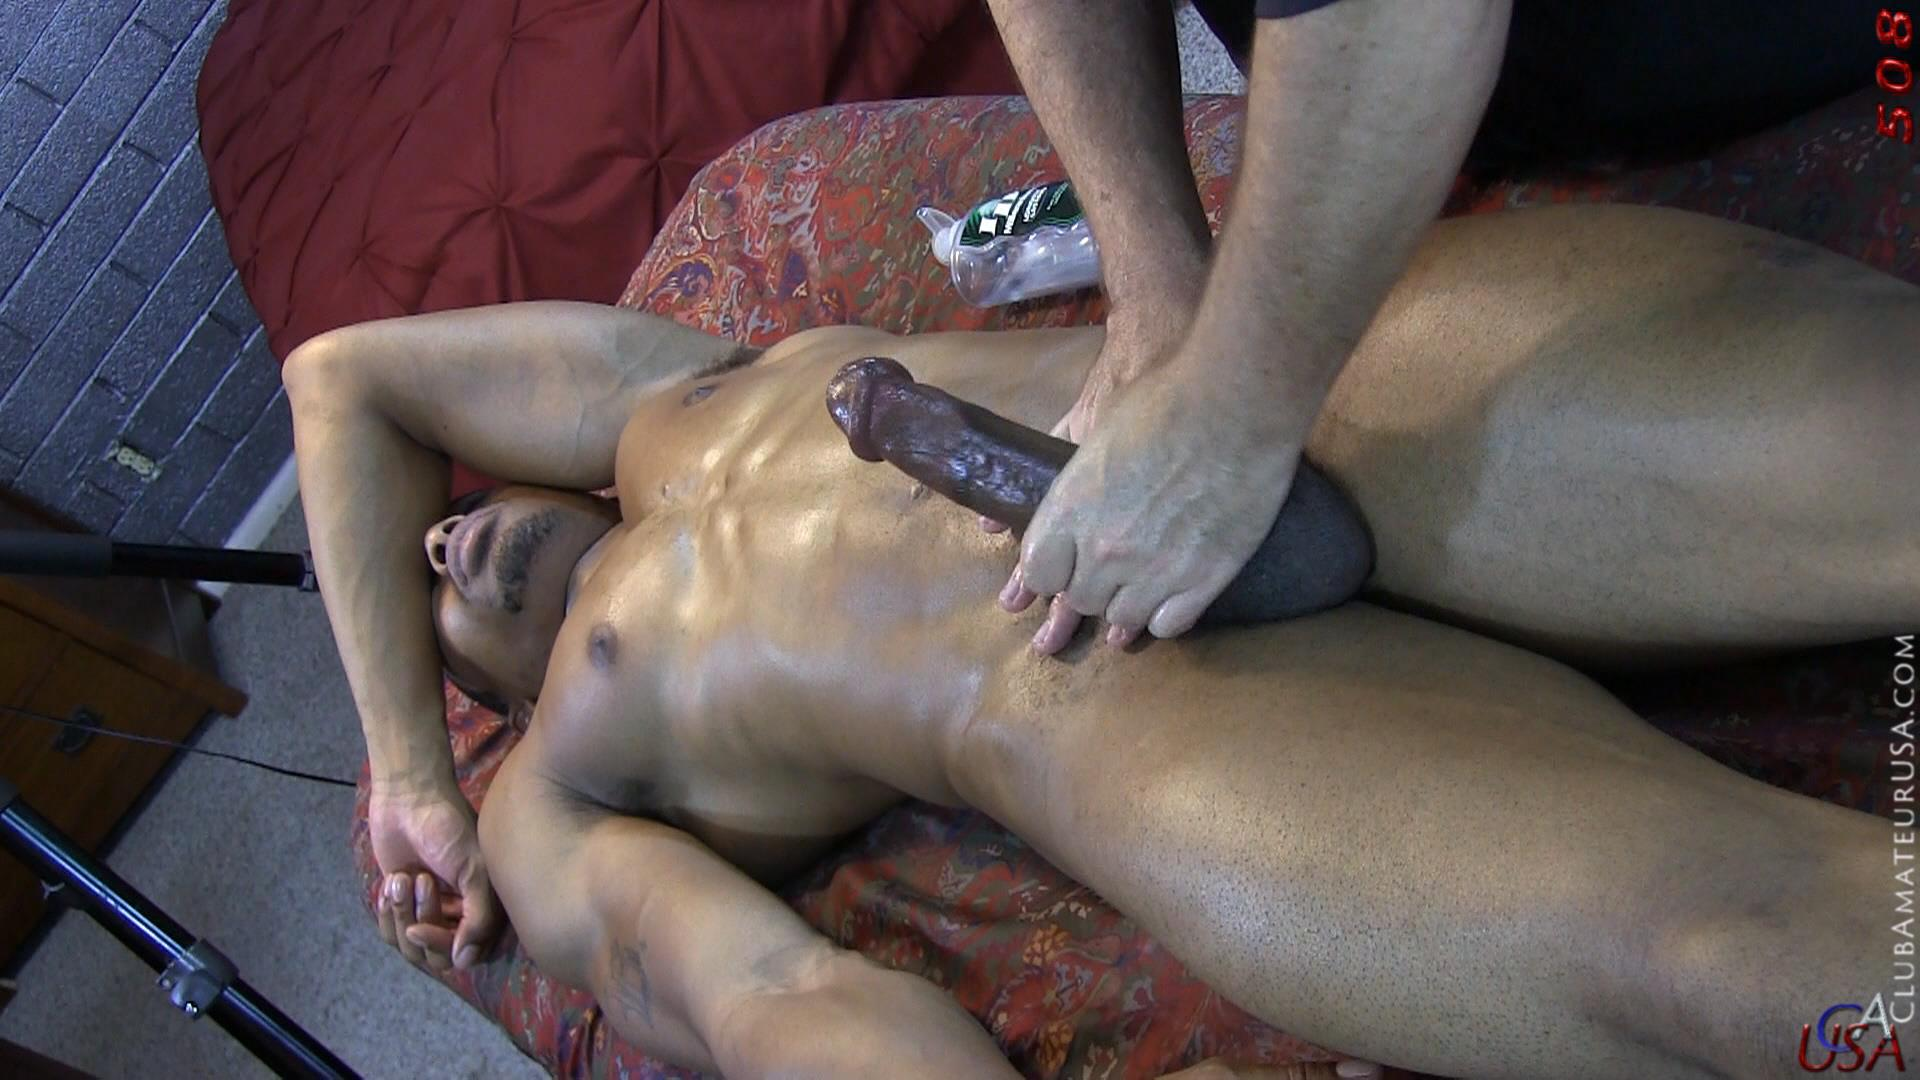 Club Amateur USA Gracen Straight Big Black Cock Getting Sucked With Cum Amateur Gay Porn 48 Straight Ghetto Thug Gets A Massage With A Happy Ending From A Guy